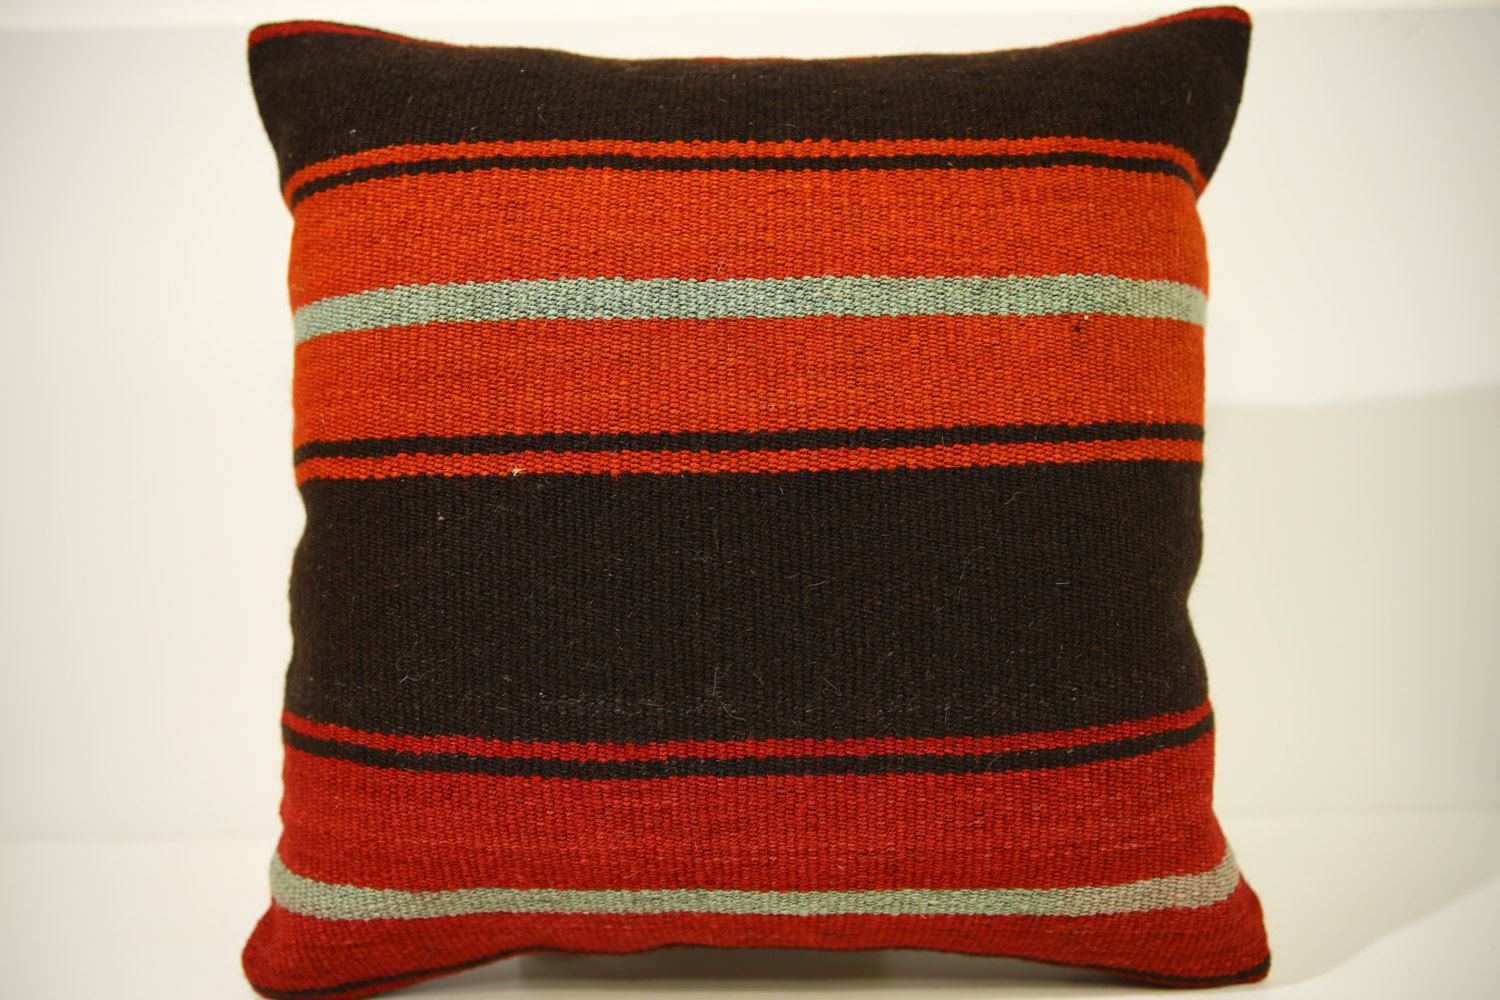 Kilim Pillows | 16x16 | Turkish pillows | 1556 | Accent Pillow,Decorative Pillow